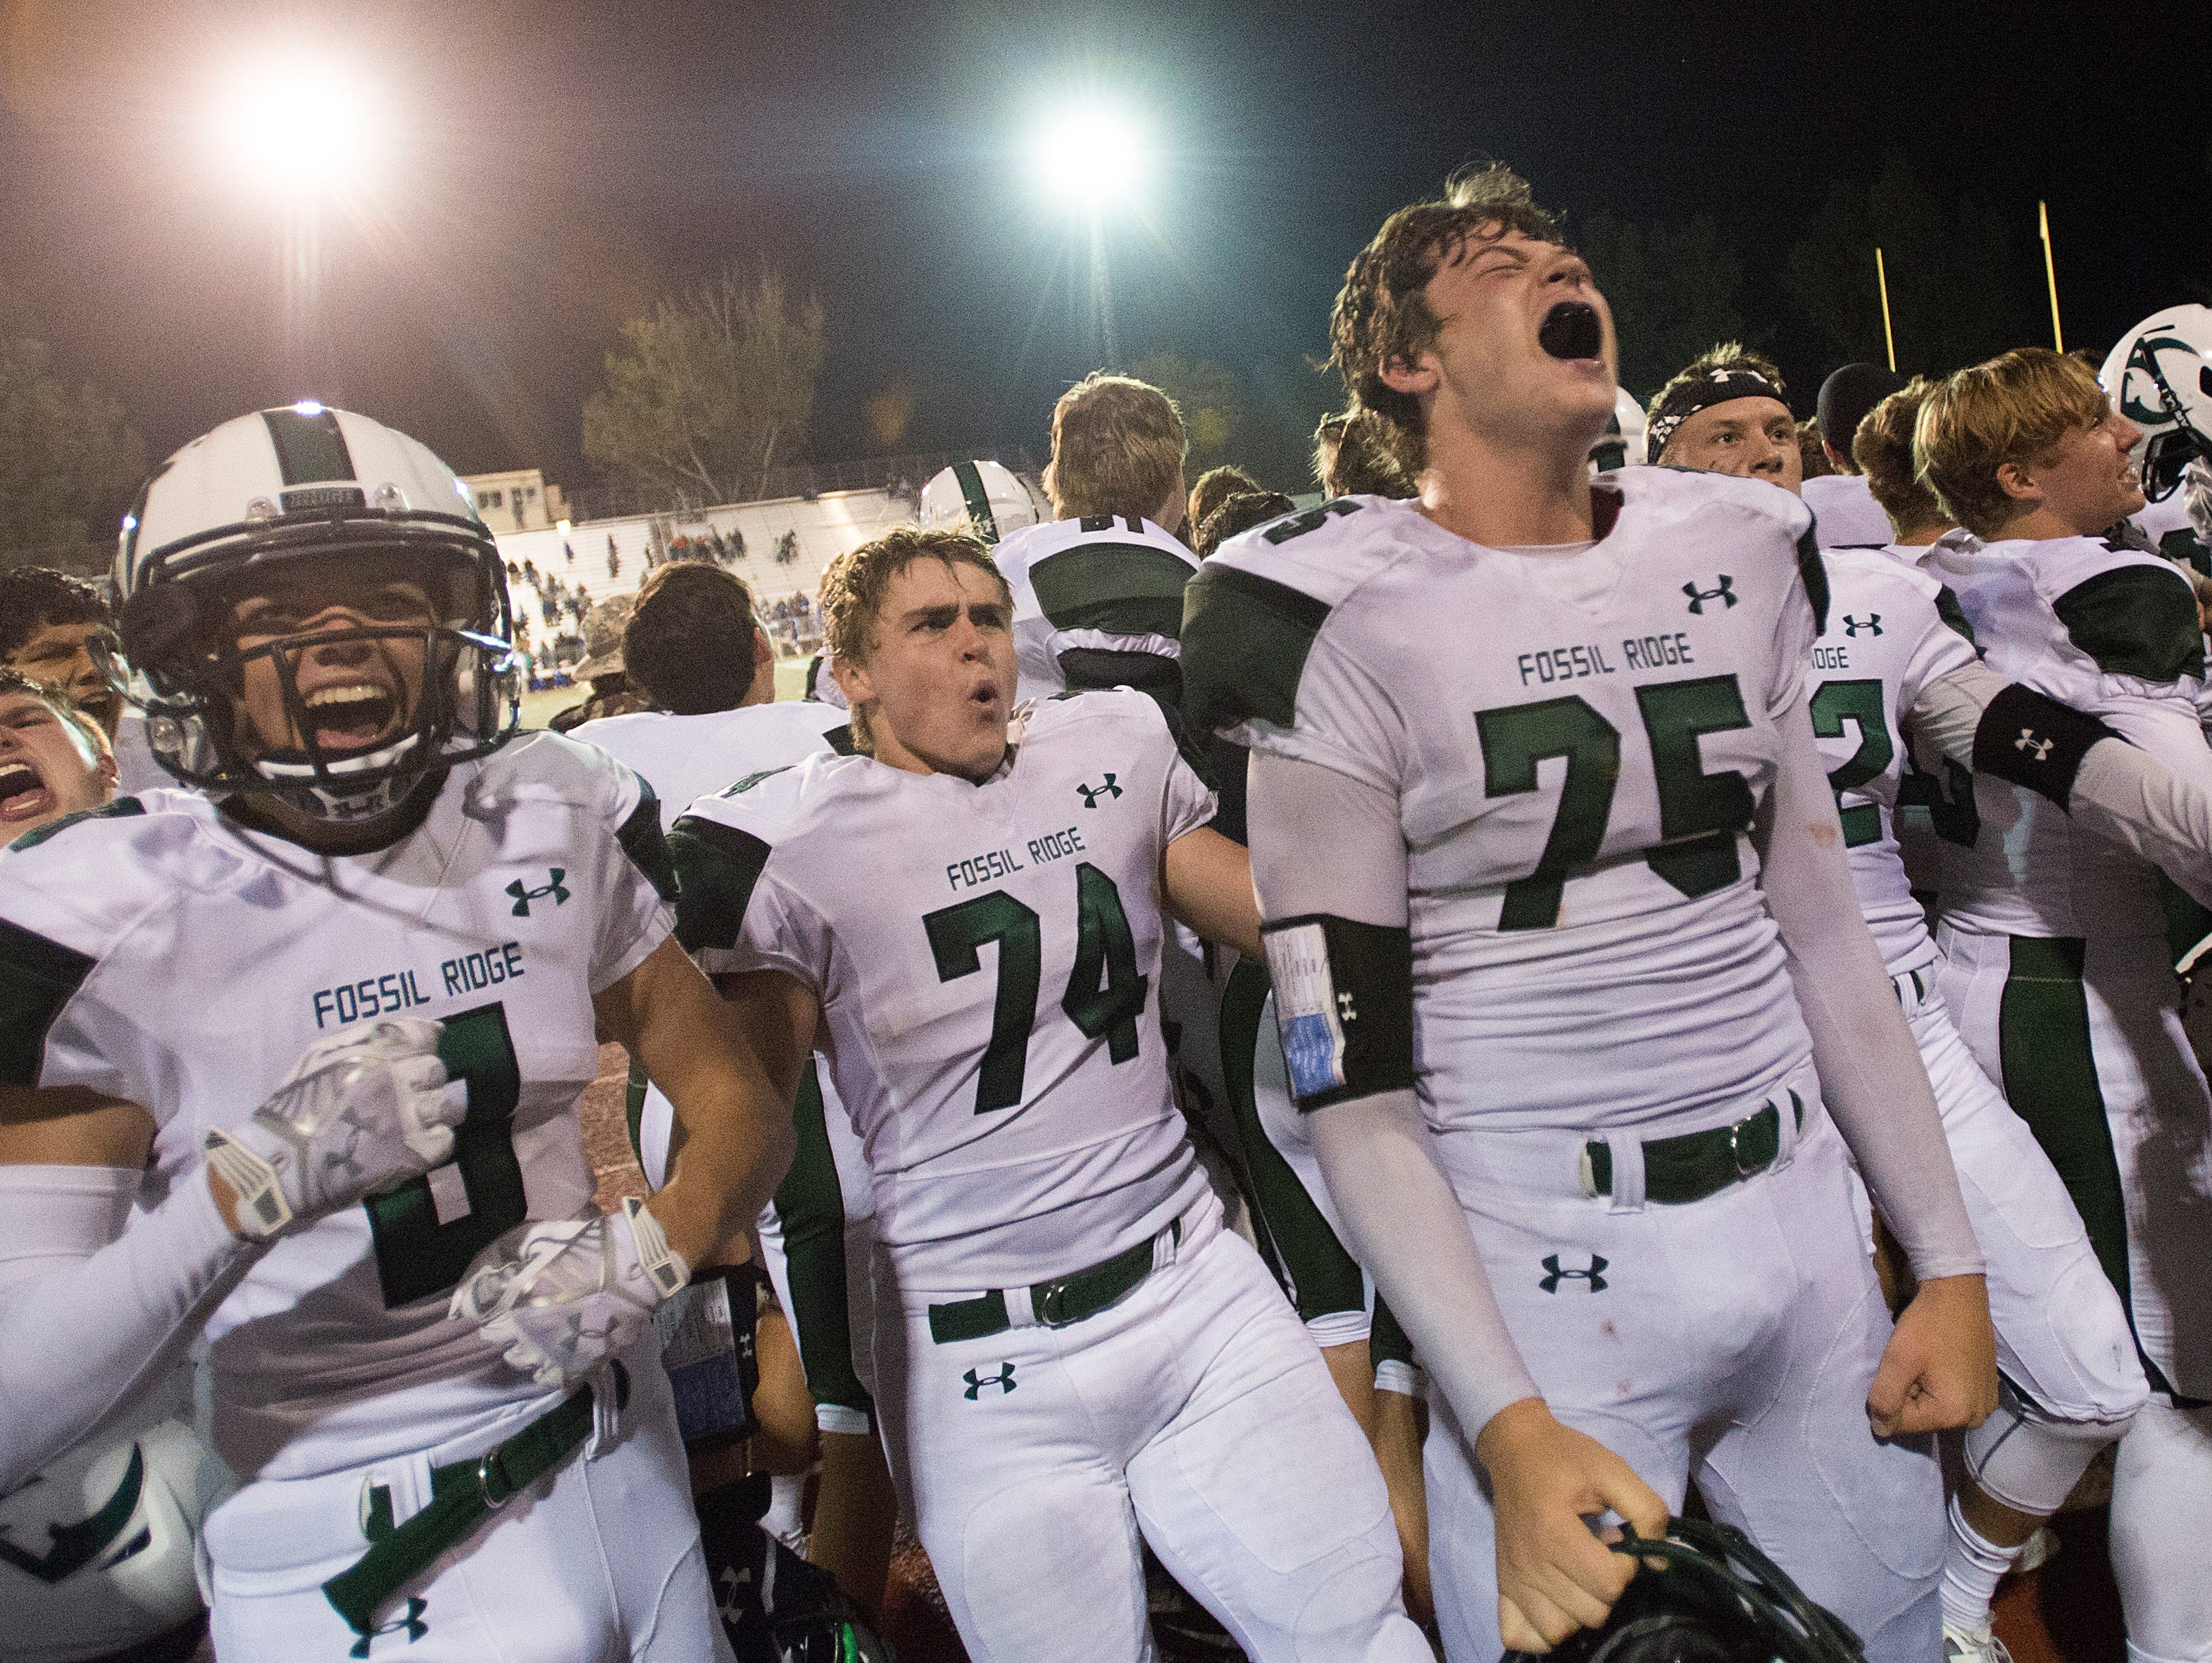 Fossil Ridge High School football players celebrate a 17-14 win over Poudre at French Field Friday, October 2, 2015. A field goal in the final seconds of the game allowed the SaberCats to top the Impalas.